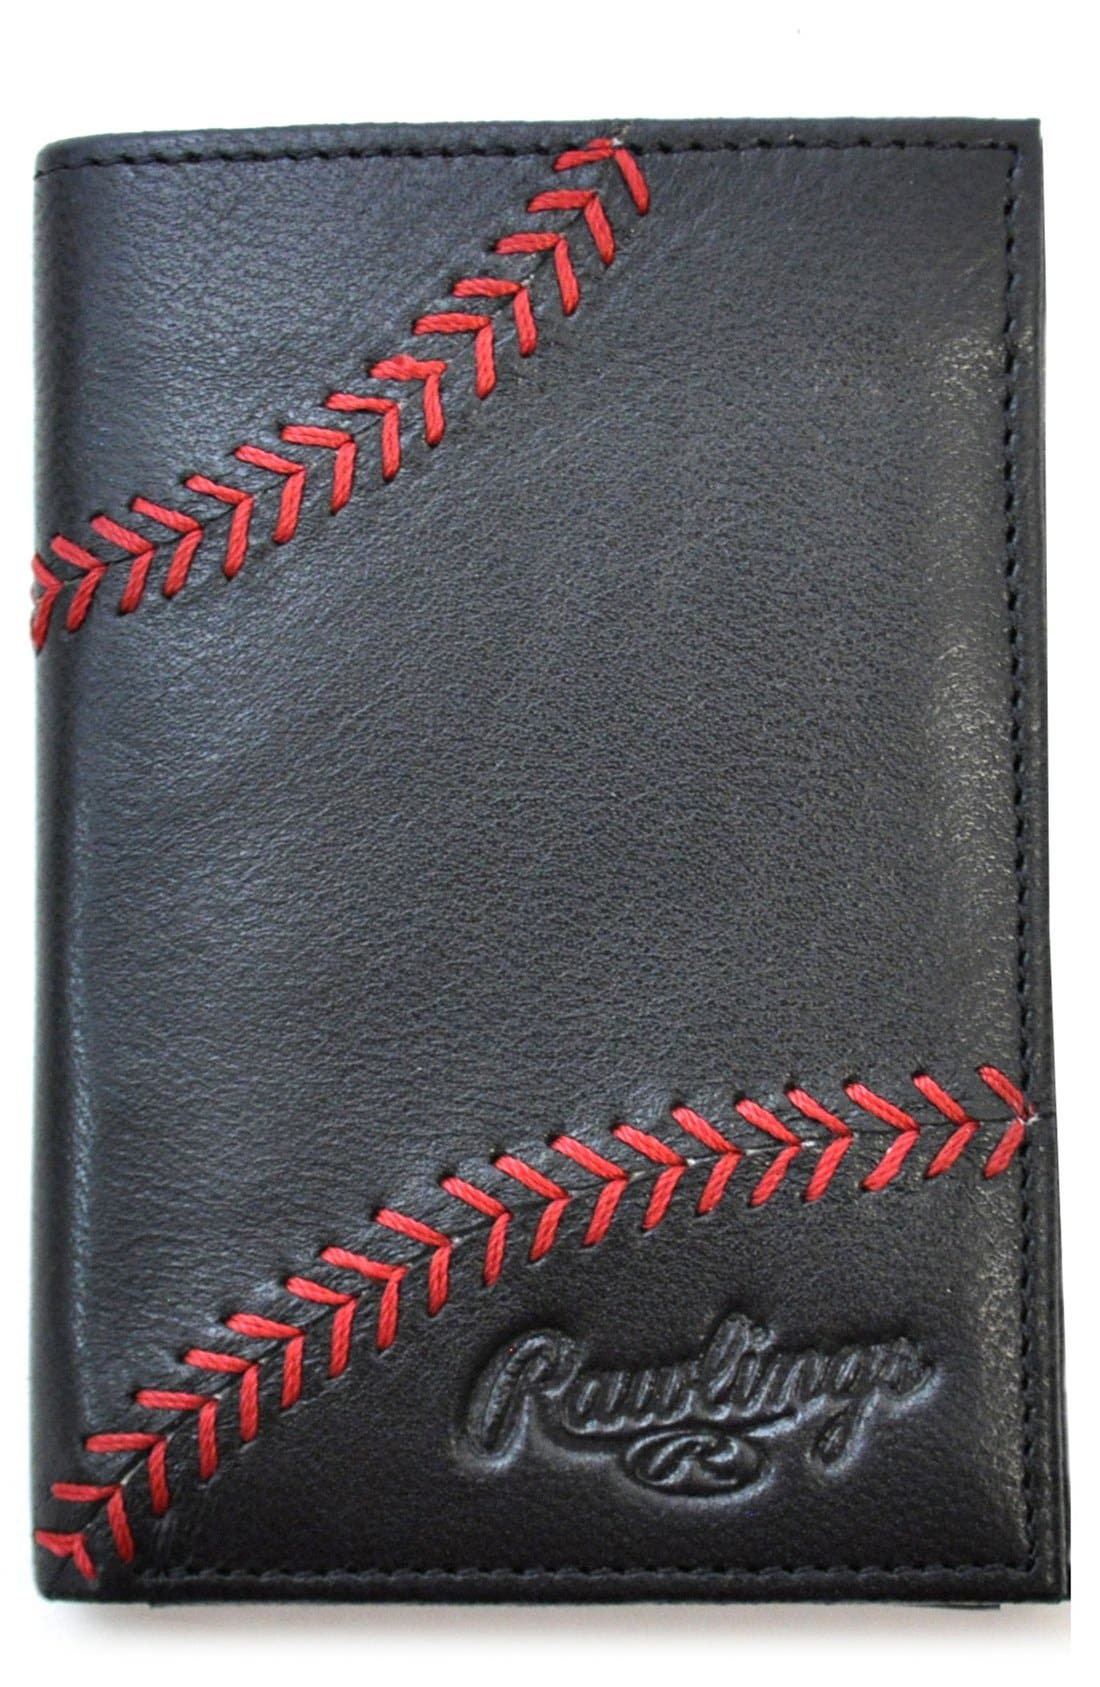 Rawlings® Baseball Stitch Leather Money Clip Wallet